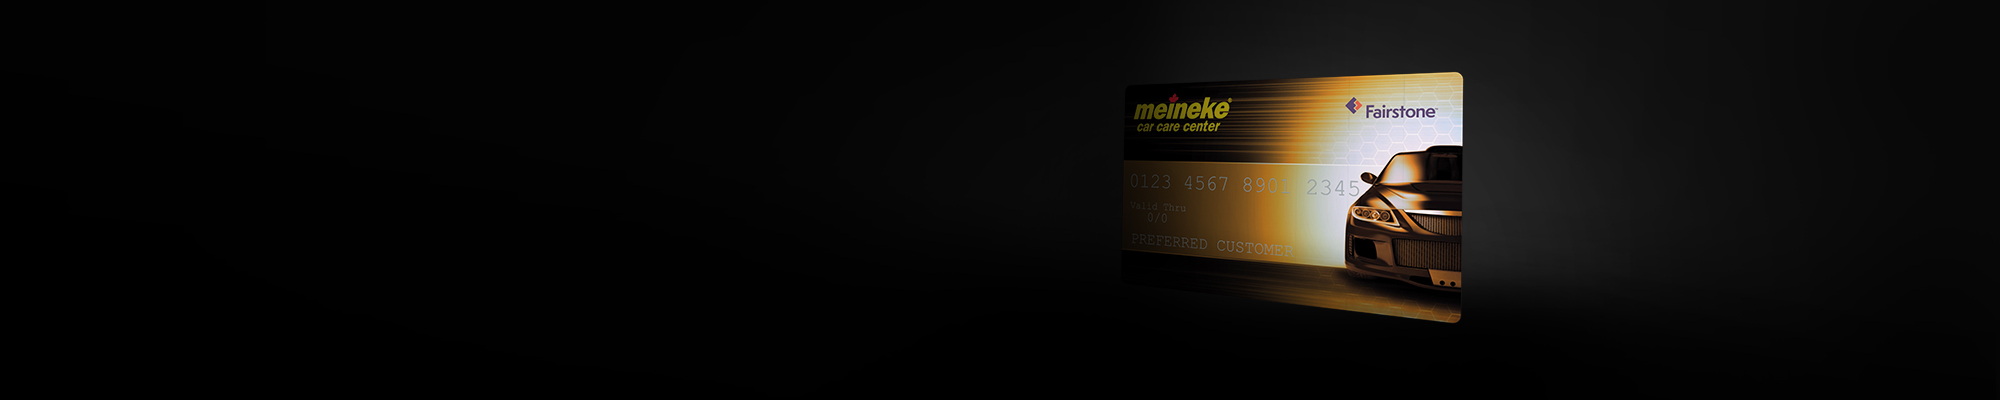 Fairstone Credit Card Background